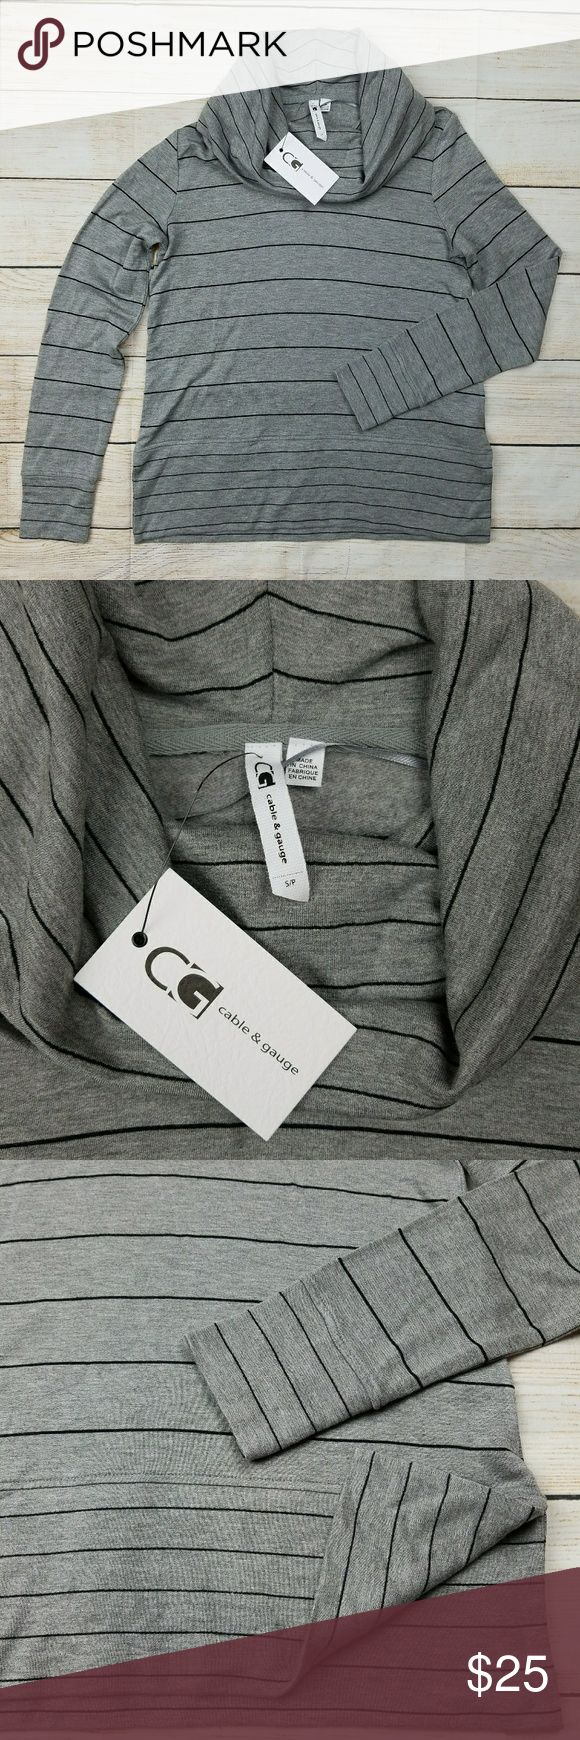 """Cable & gauge cowl neck sweatshirt top Small NWT NEW Cable & gauge cowl neck sweatshirt top Brand new with tags.  No flaws  Measurements approx (taken with item laid flat across side to side) Shoulders 16.5"""" Chest 17.5"""" Sleeve 24"""" Length 2.5""""  ✔For the best results I recommend comparing the measurements of your favorite fitting top or a similar item to the measurements provided above   From a smoke-free home  (160) Cable & Gauge Tops"""